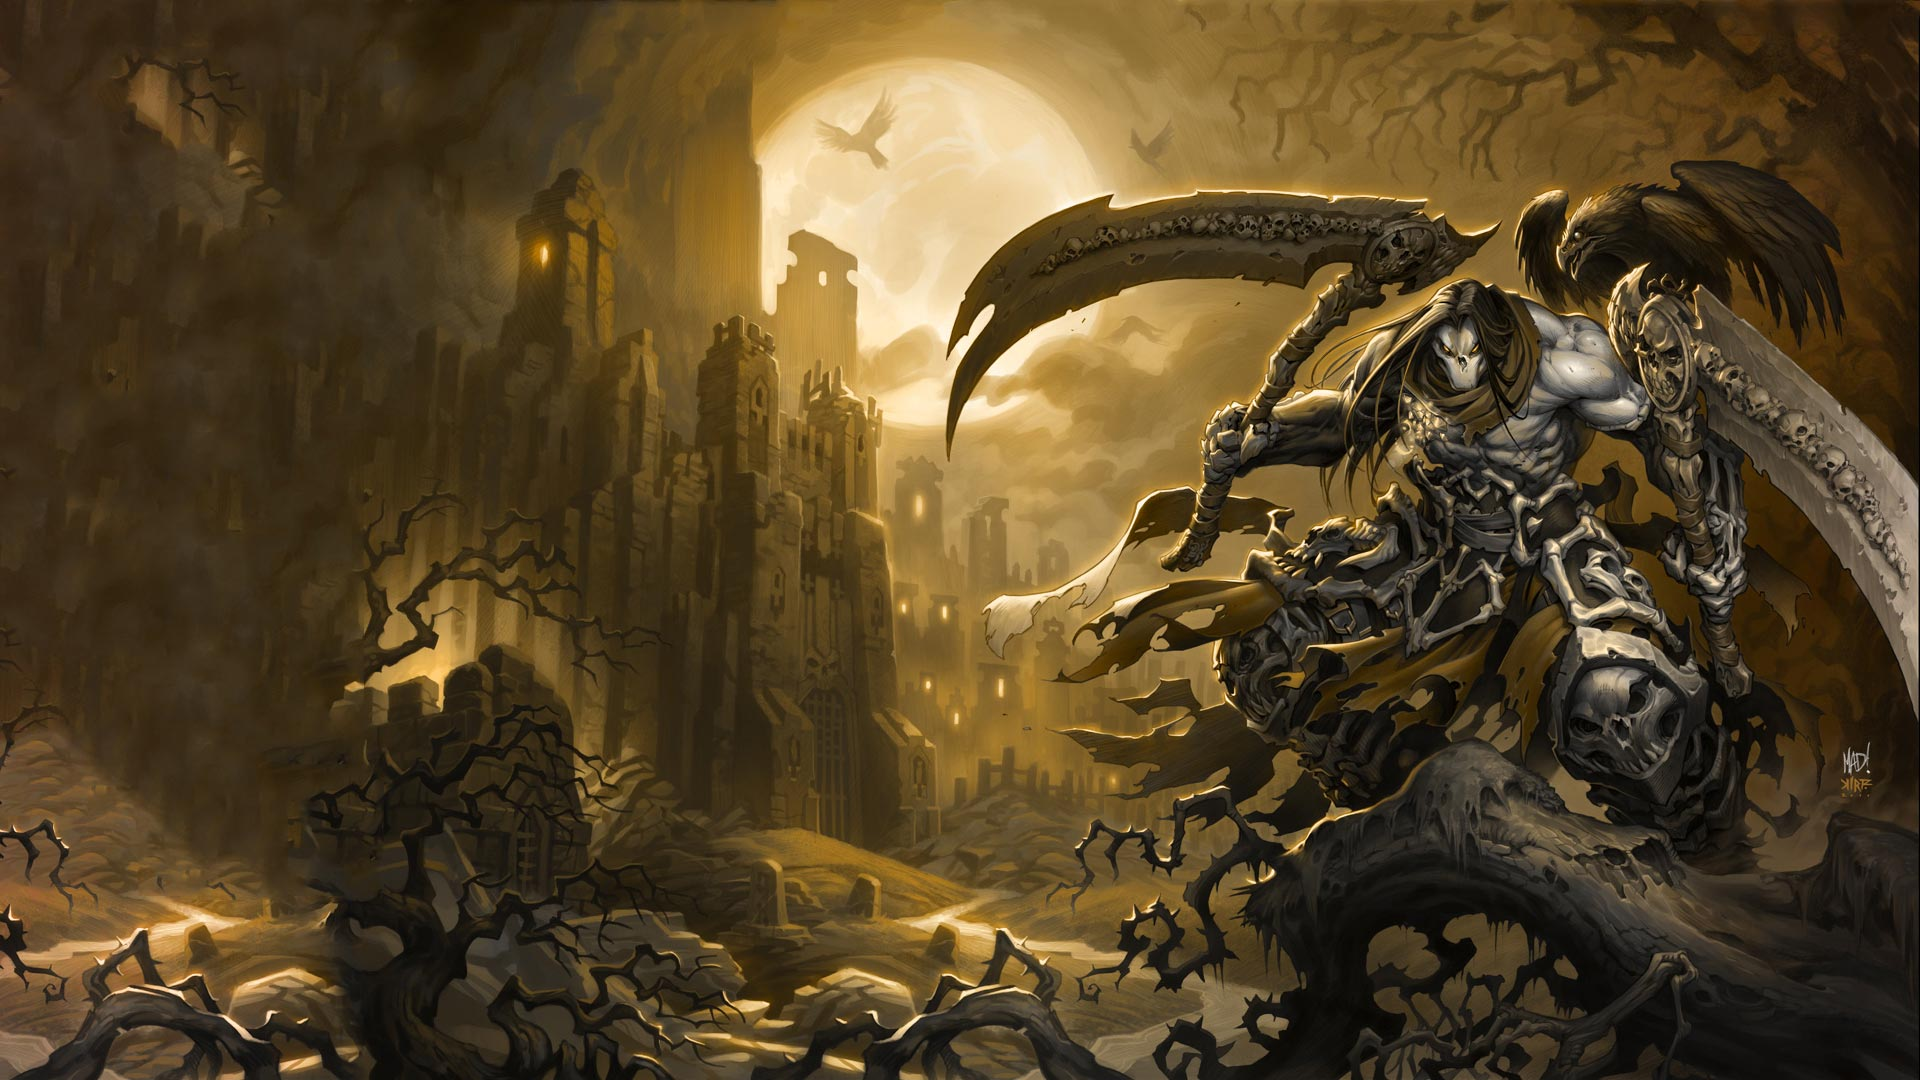 Darksiders II Full HD Wallpaper and Background | 1920x1080 | ID:288192